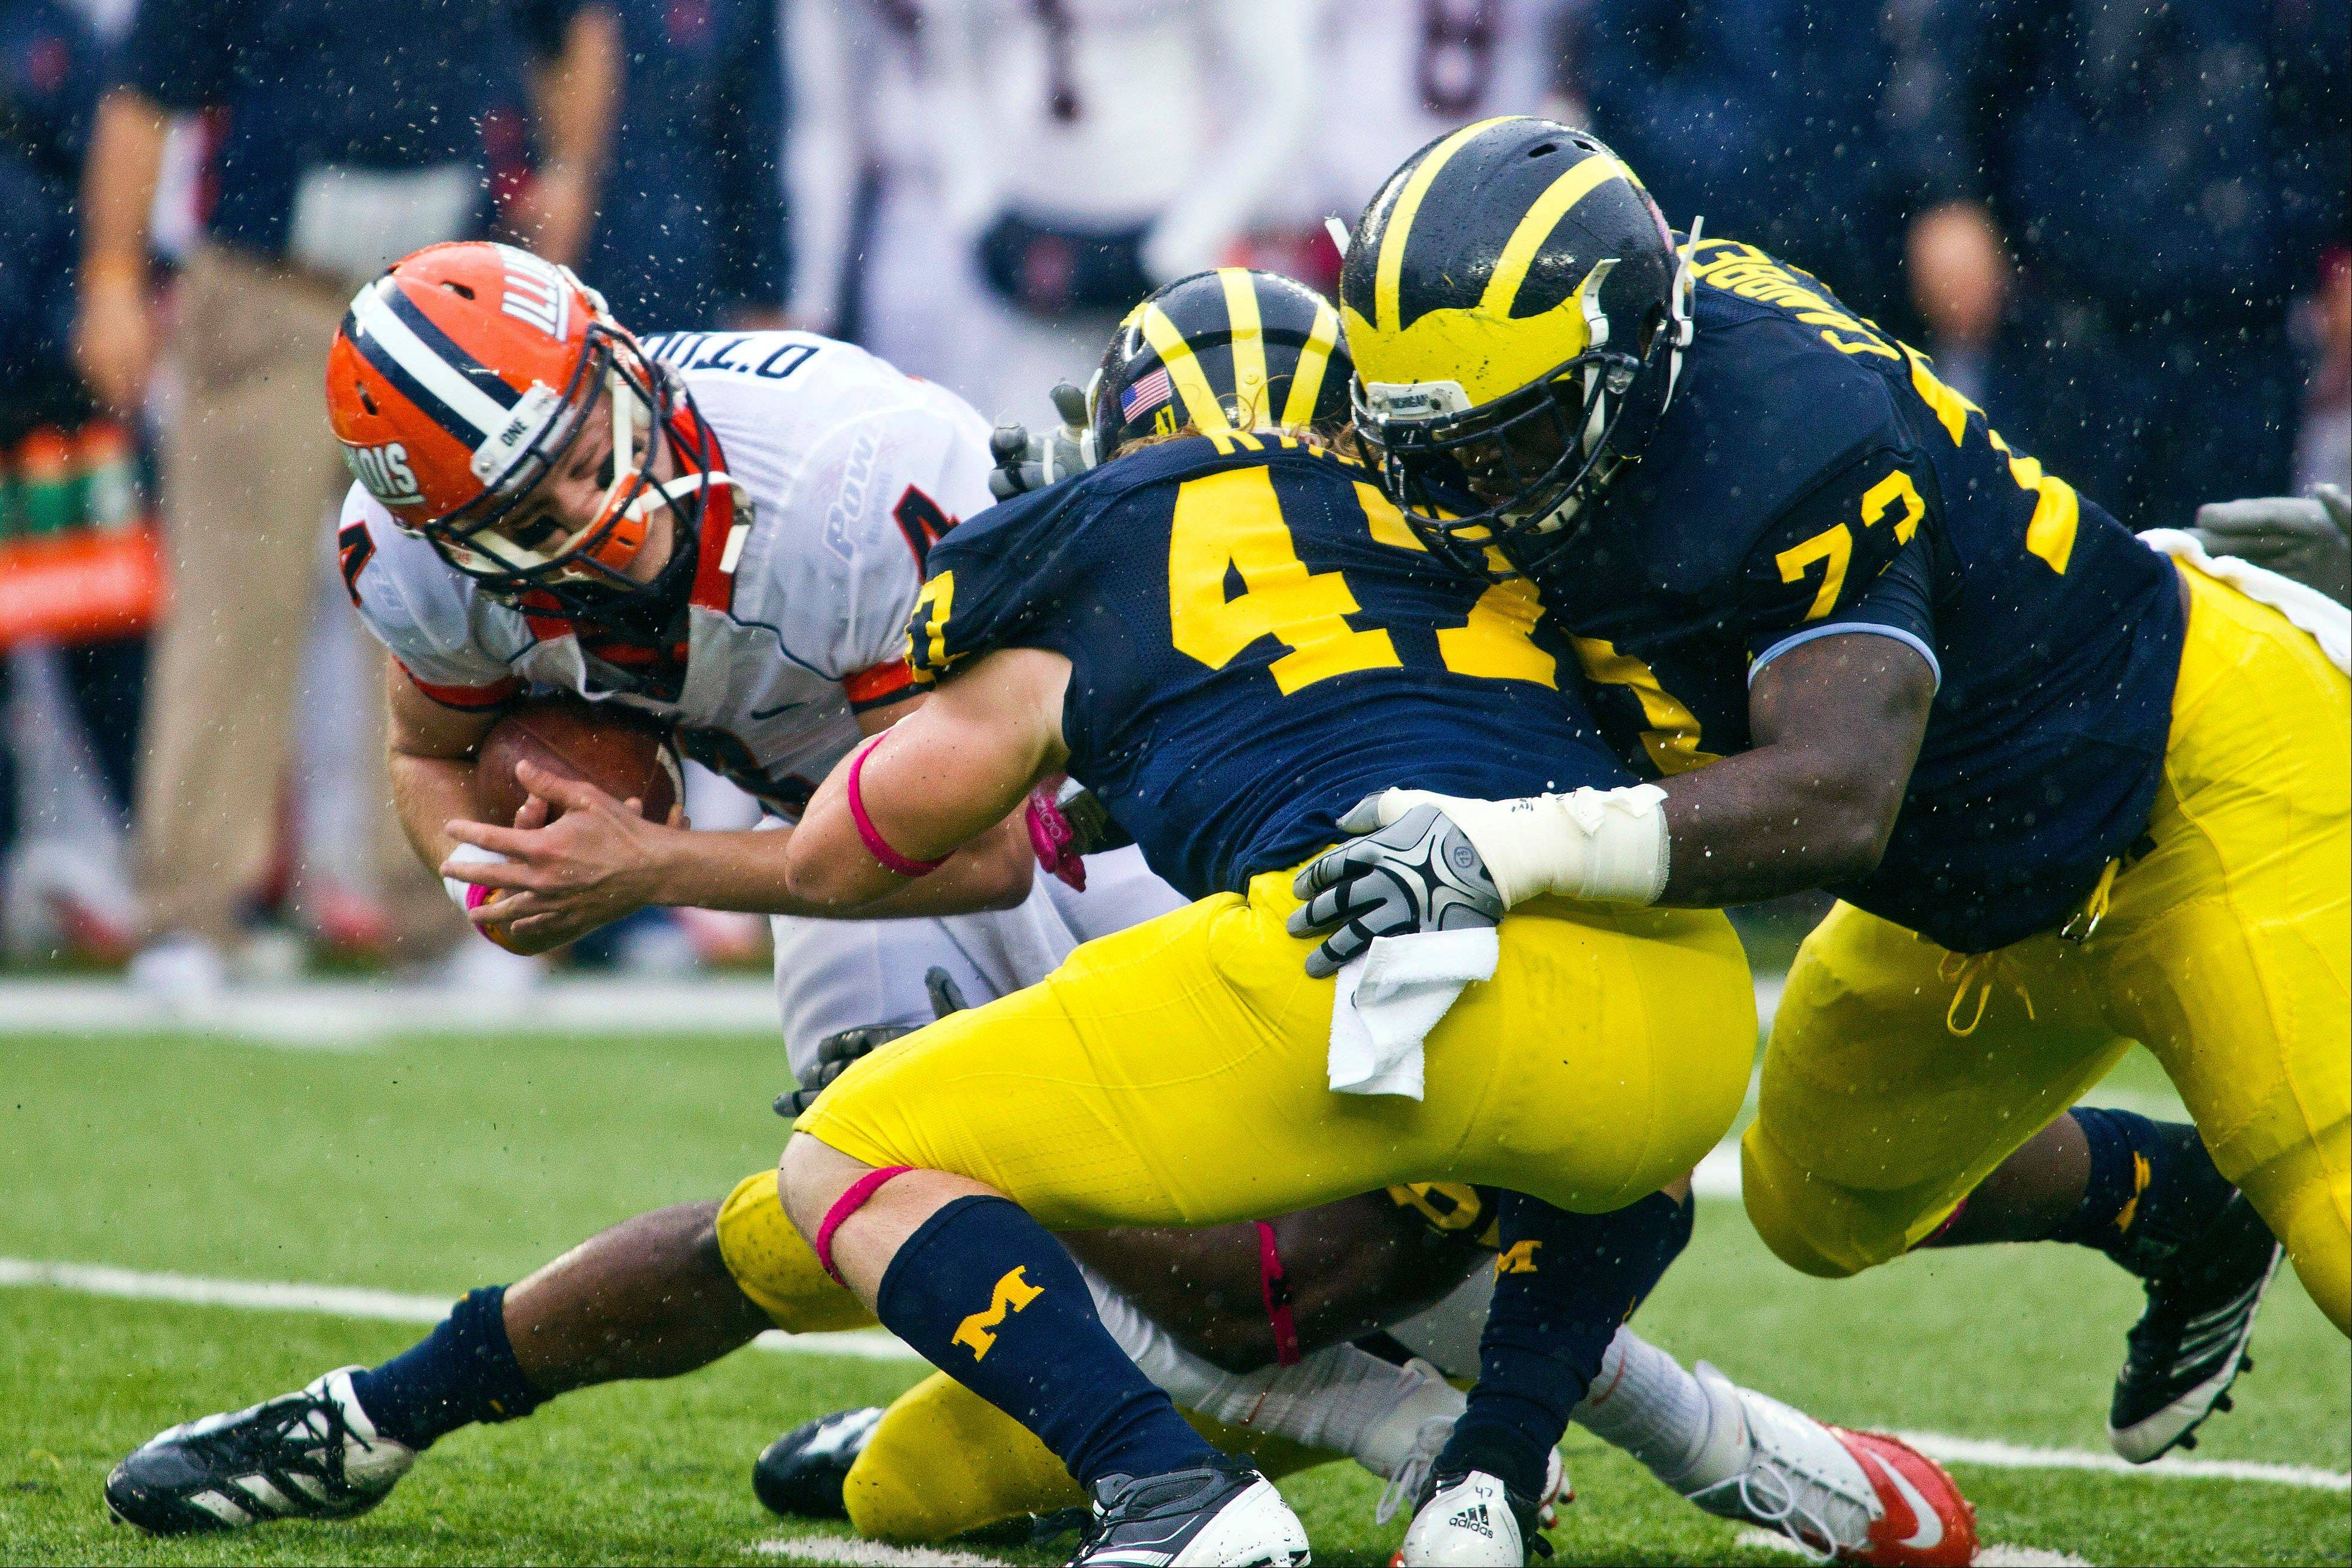 Illinois quarterback Reilly O'Toole is tackled by Michigan linebacker Jake Ryan (47) and defensive tackle William Campbell, right, Saturday during the second quarter in Ann Arbor, Mich.